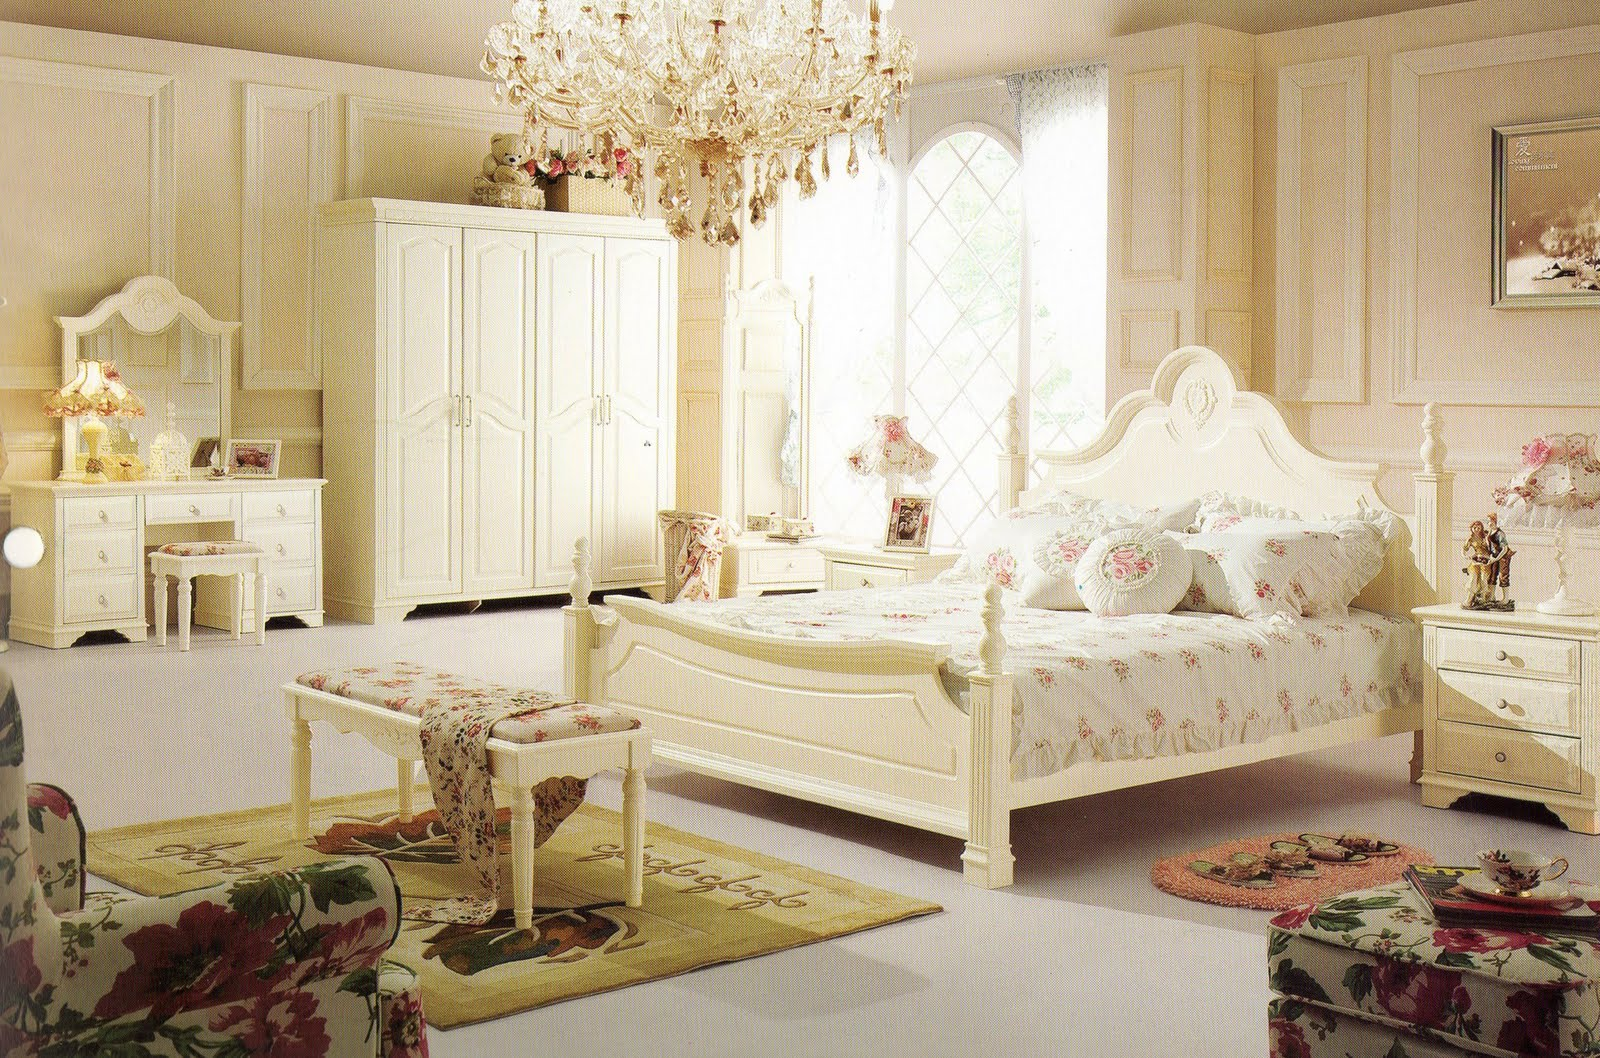 Elegant bedroom furniture bedroom furniture high resolution - Beautiful rooms images ...